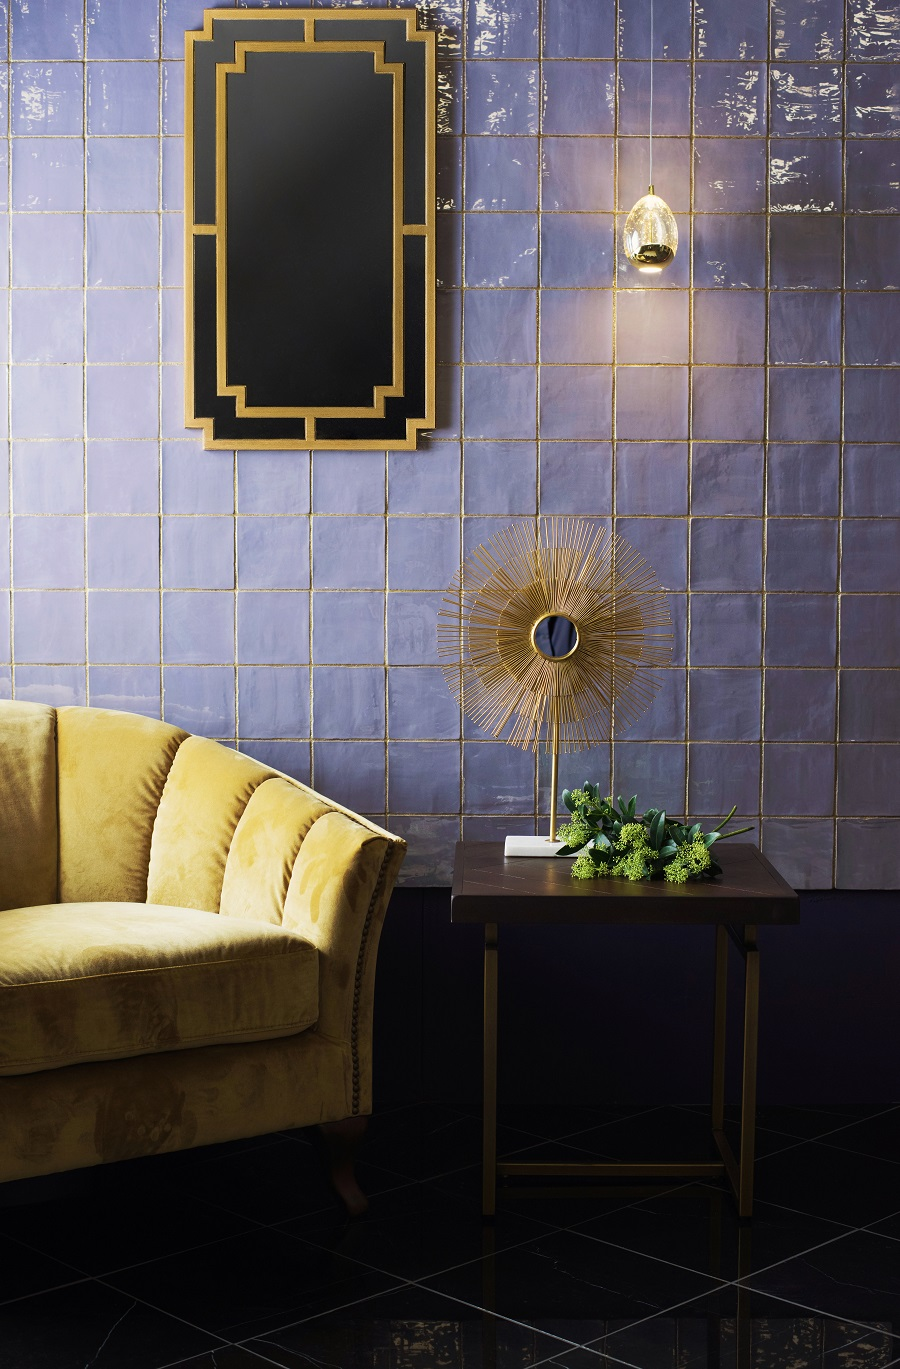 New Tile Trends - Opulent Glazes